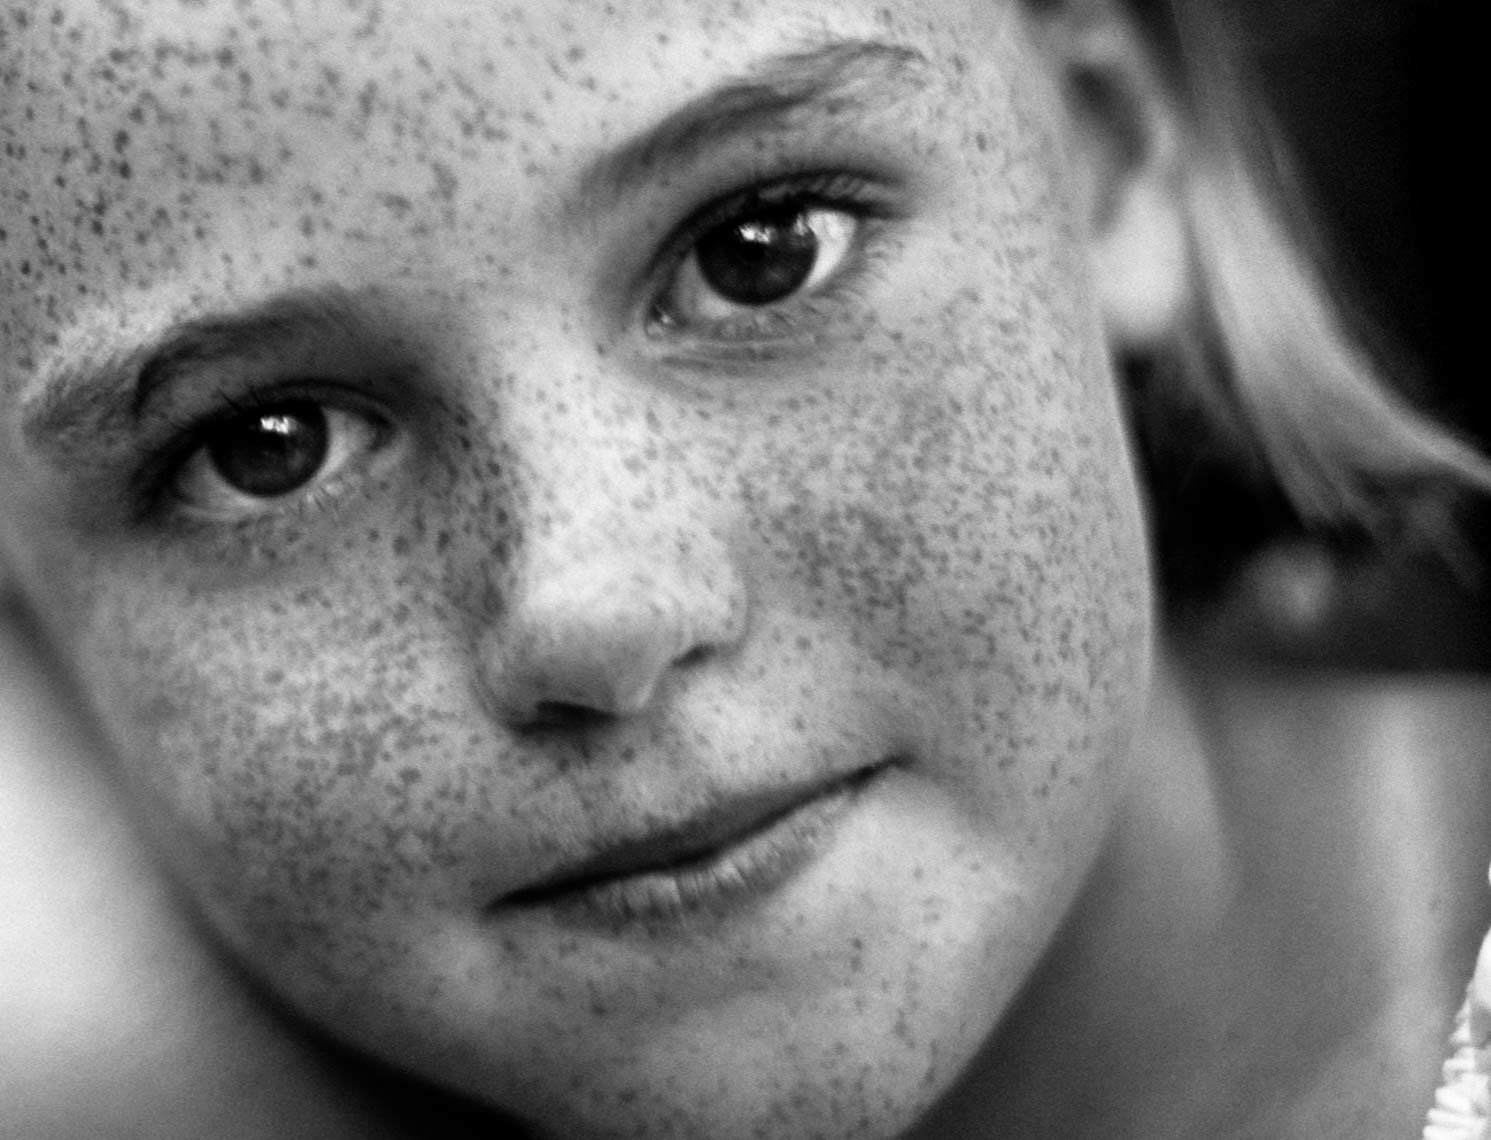 Close Up Portrait Of Child With Freckles | Tosca Radigonda Photography